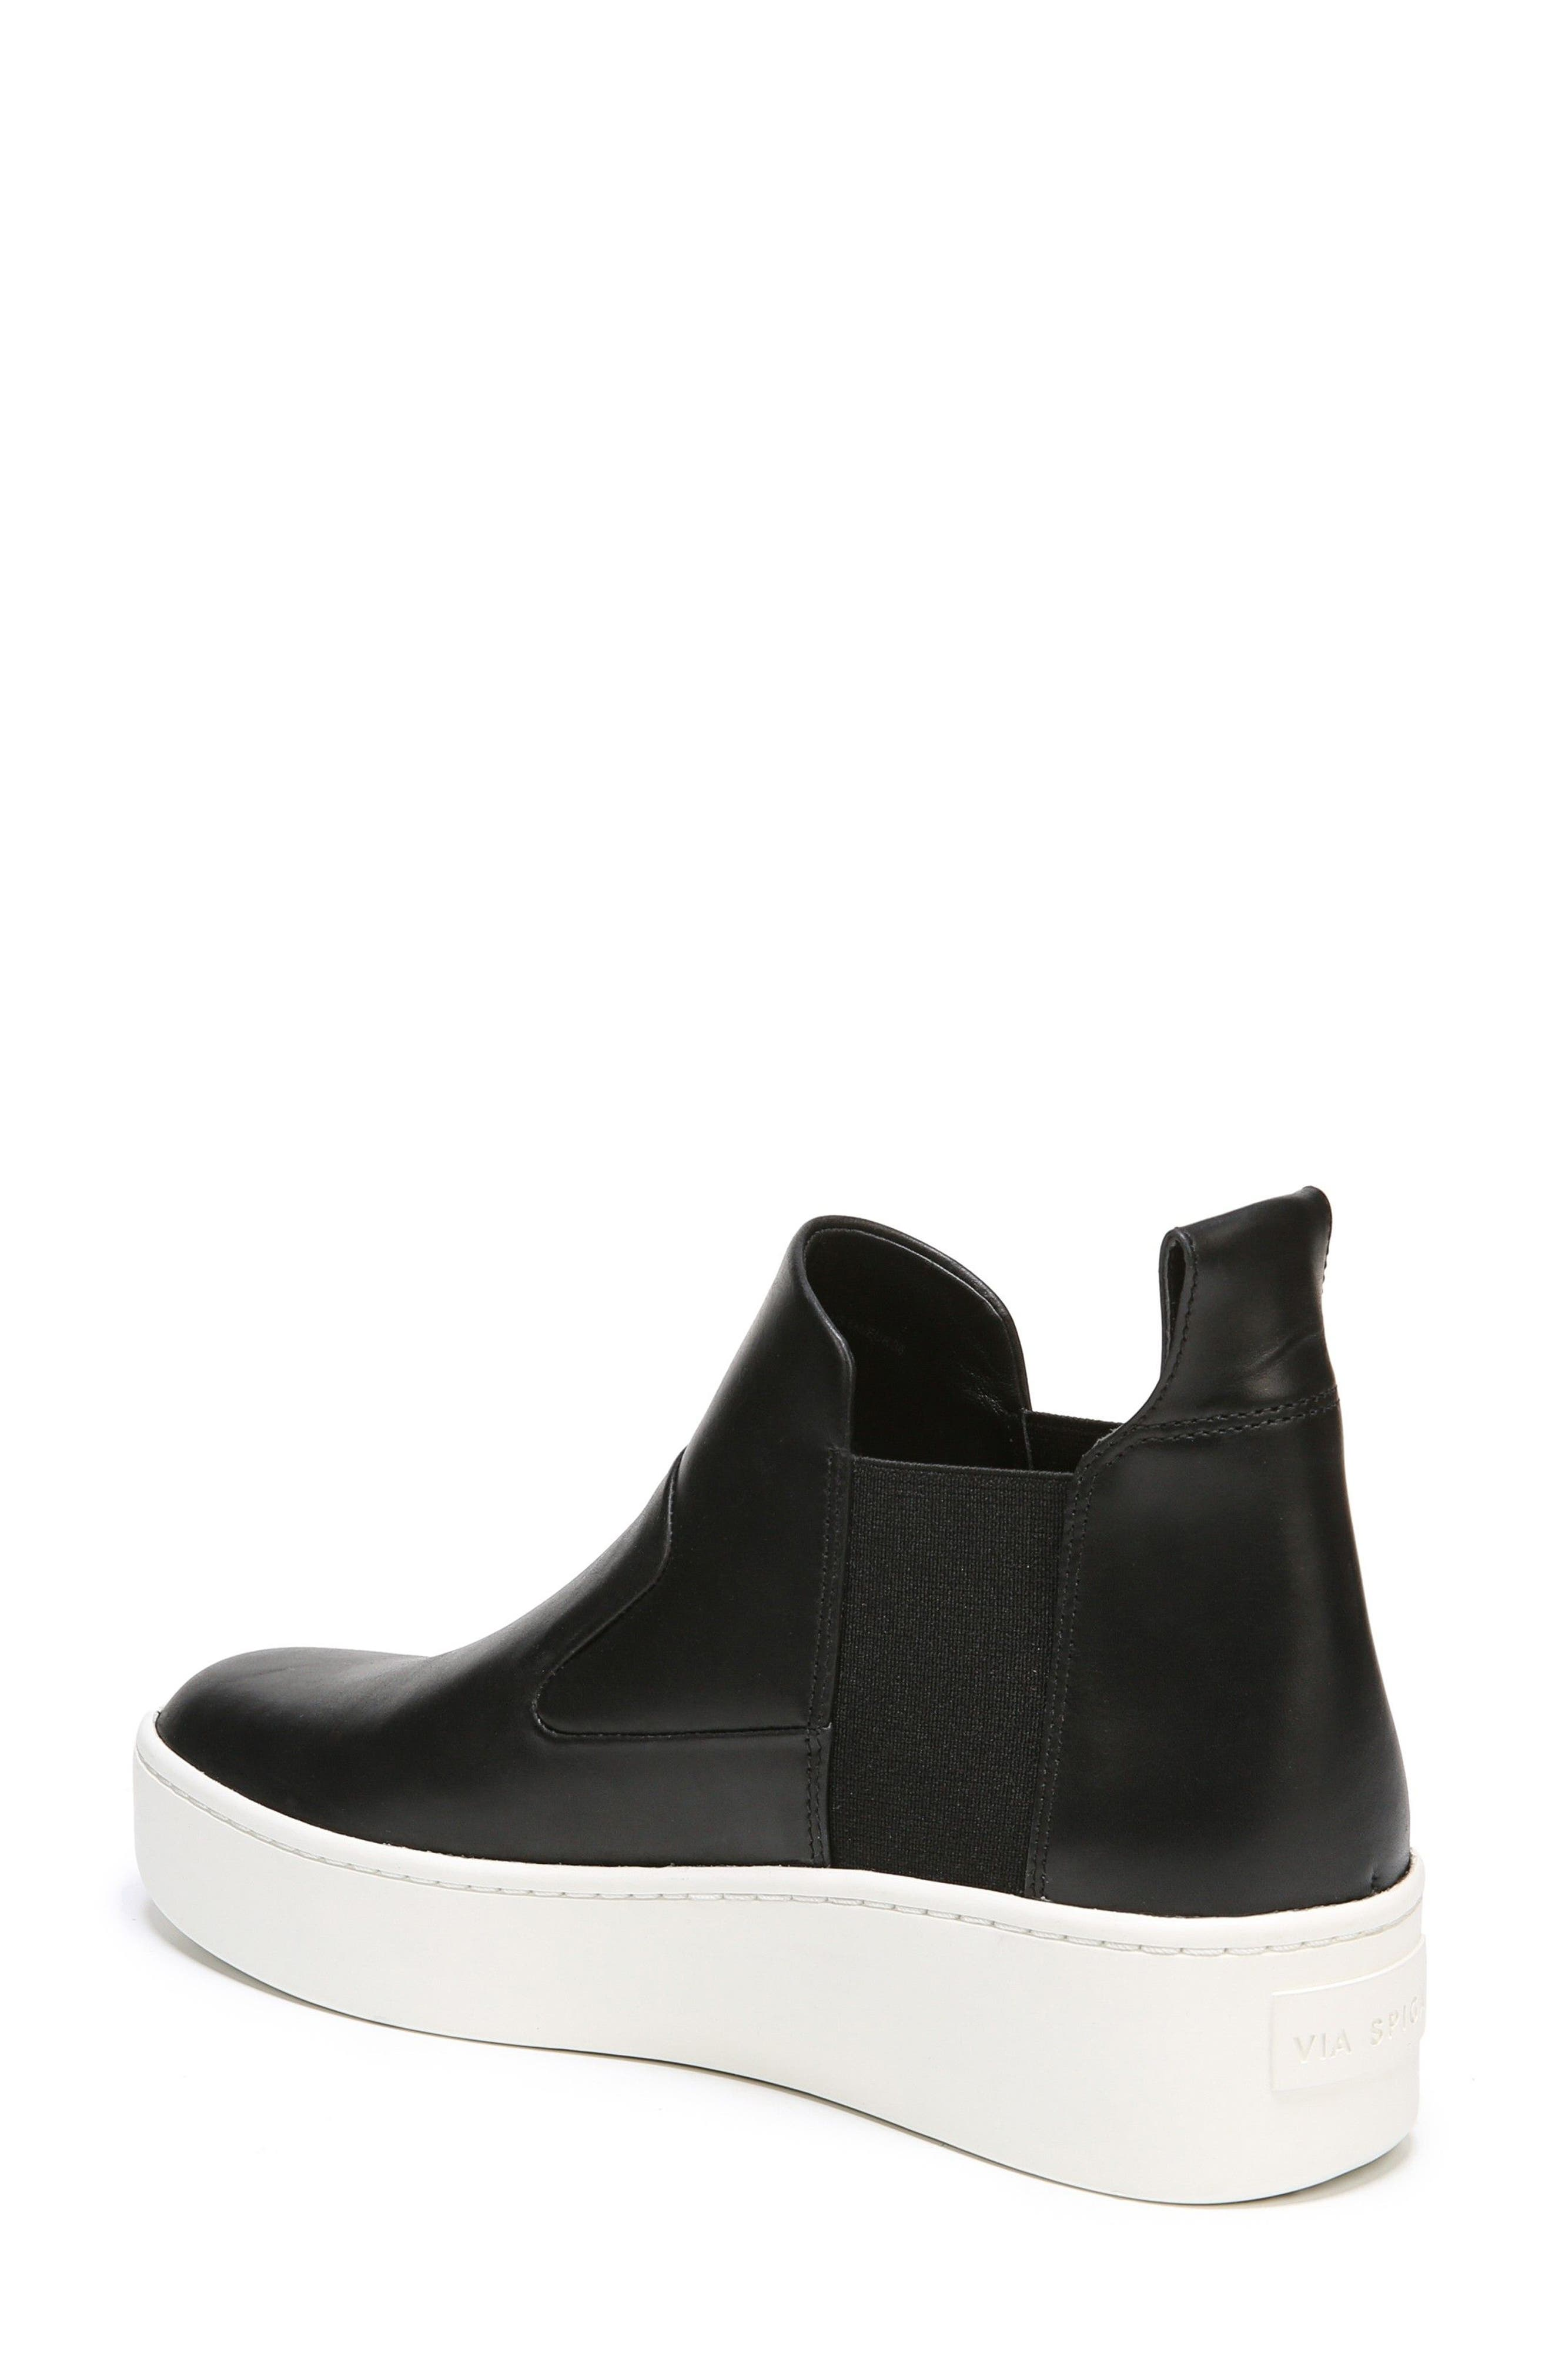 Eren Slip-On High Top Sneaker,                             Alternate thumbnail 2, color,                             001